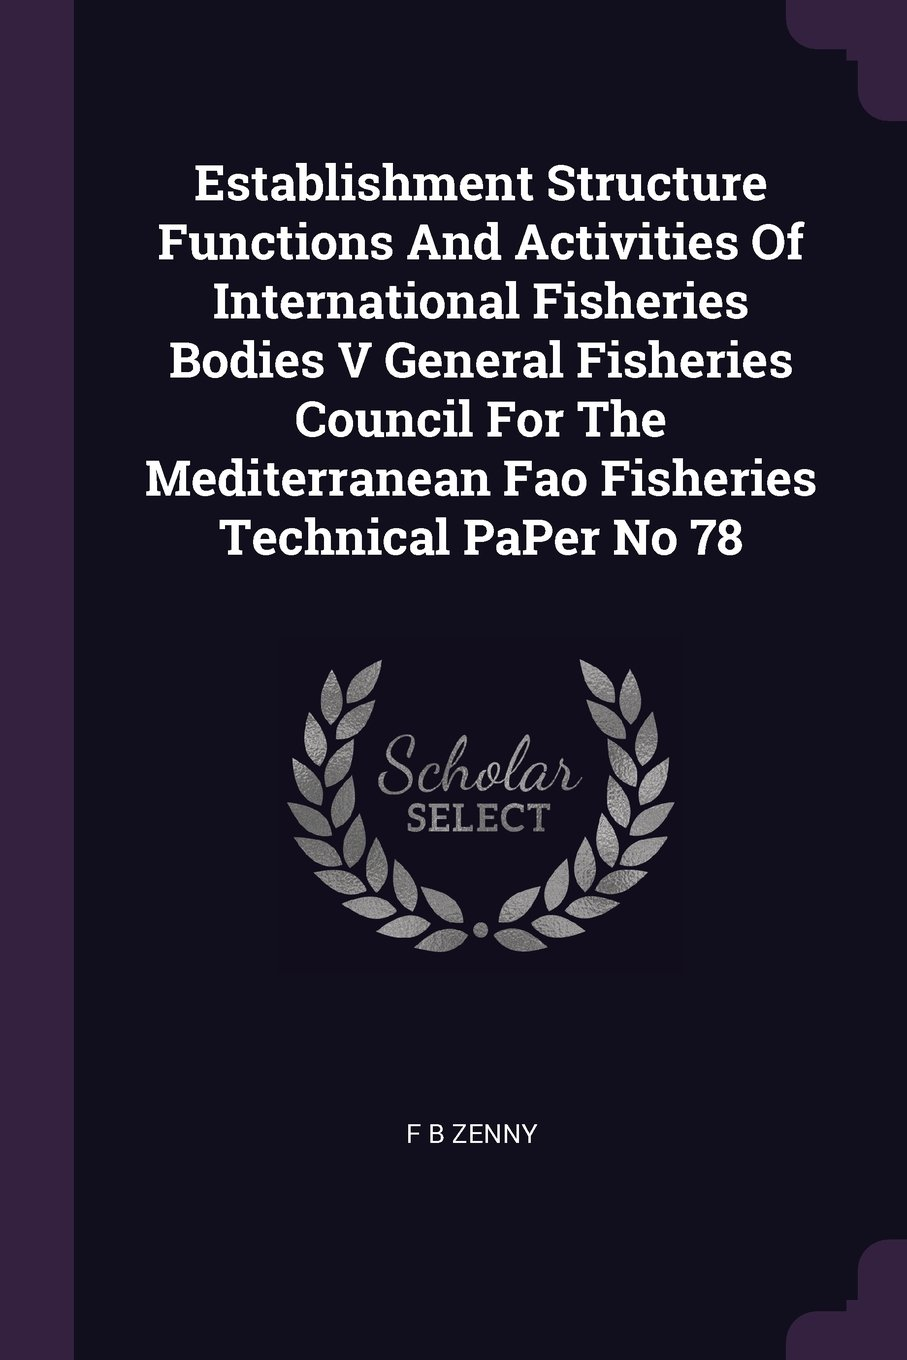 Establishment Structure Functions and Activities of International Fisheries Bodies V General Fisheries Council for the Mediterranean Fao Fisheries Technical Paper No 78 PDF